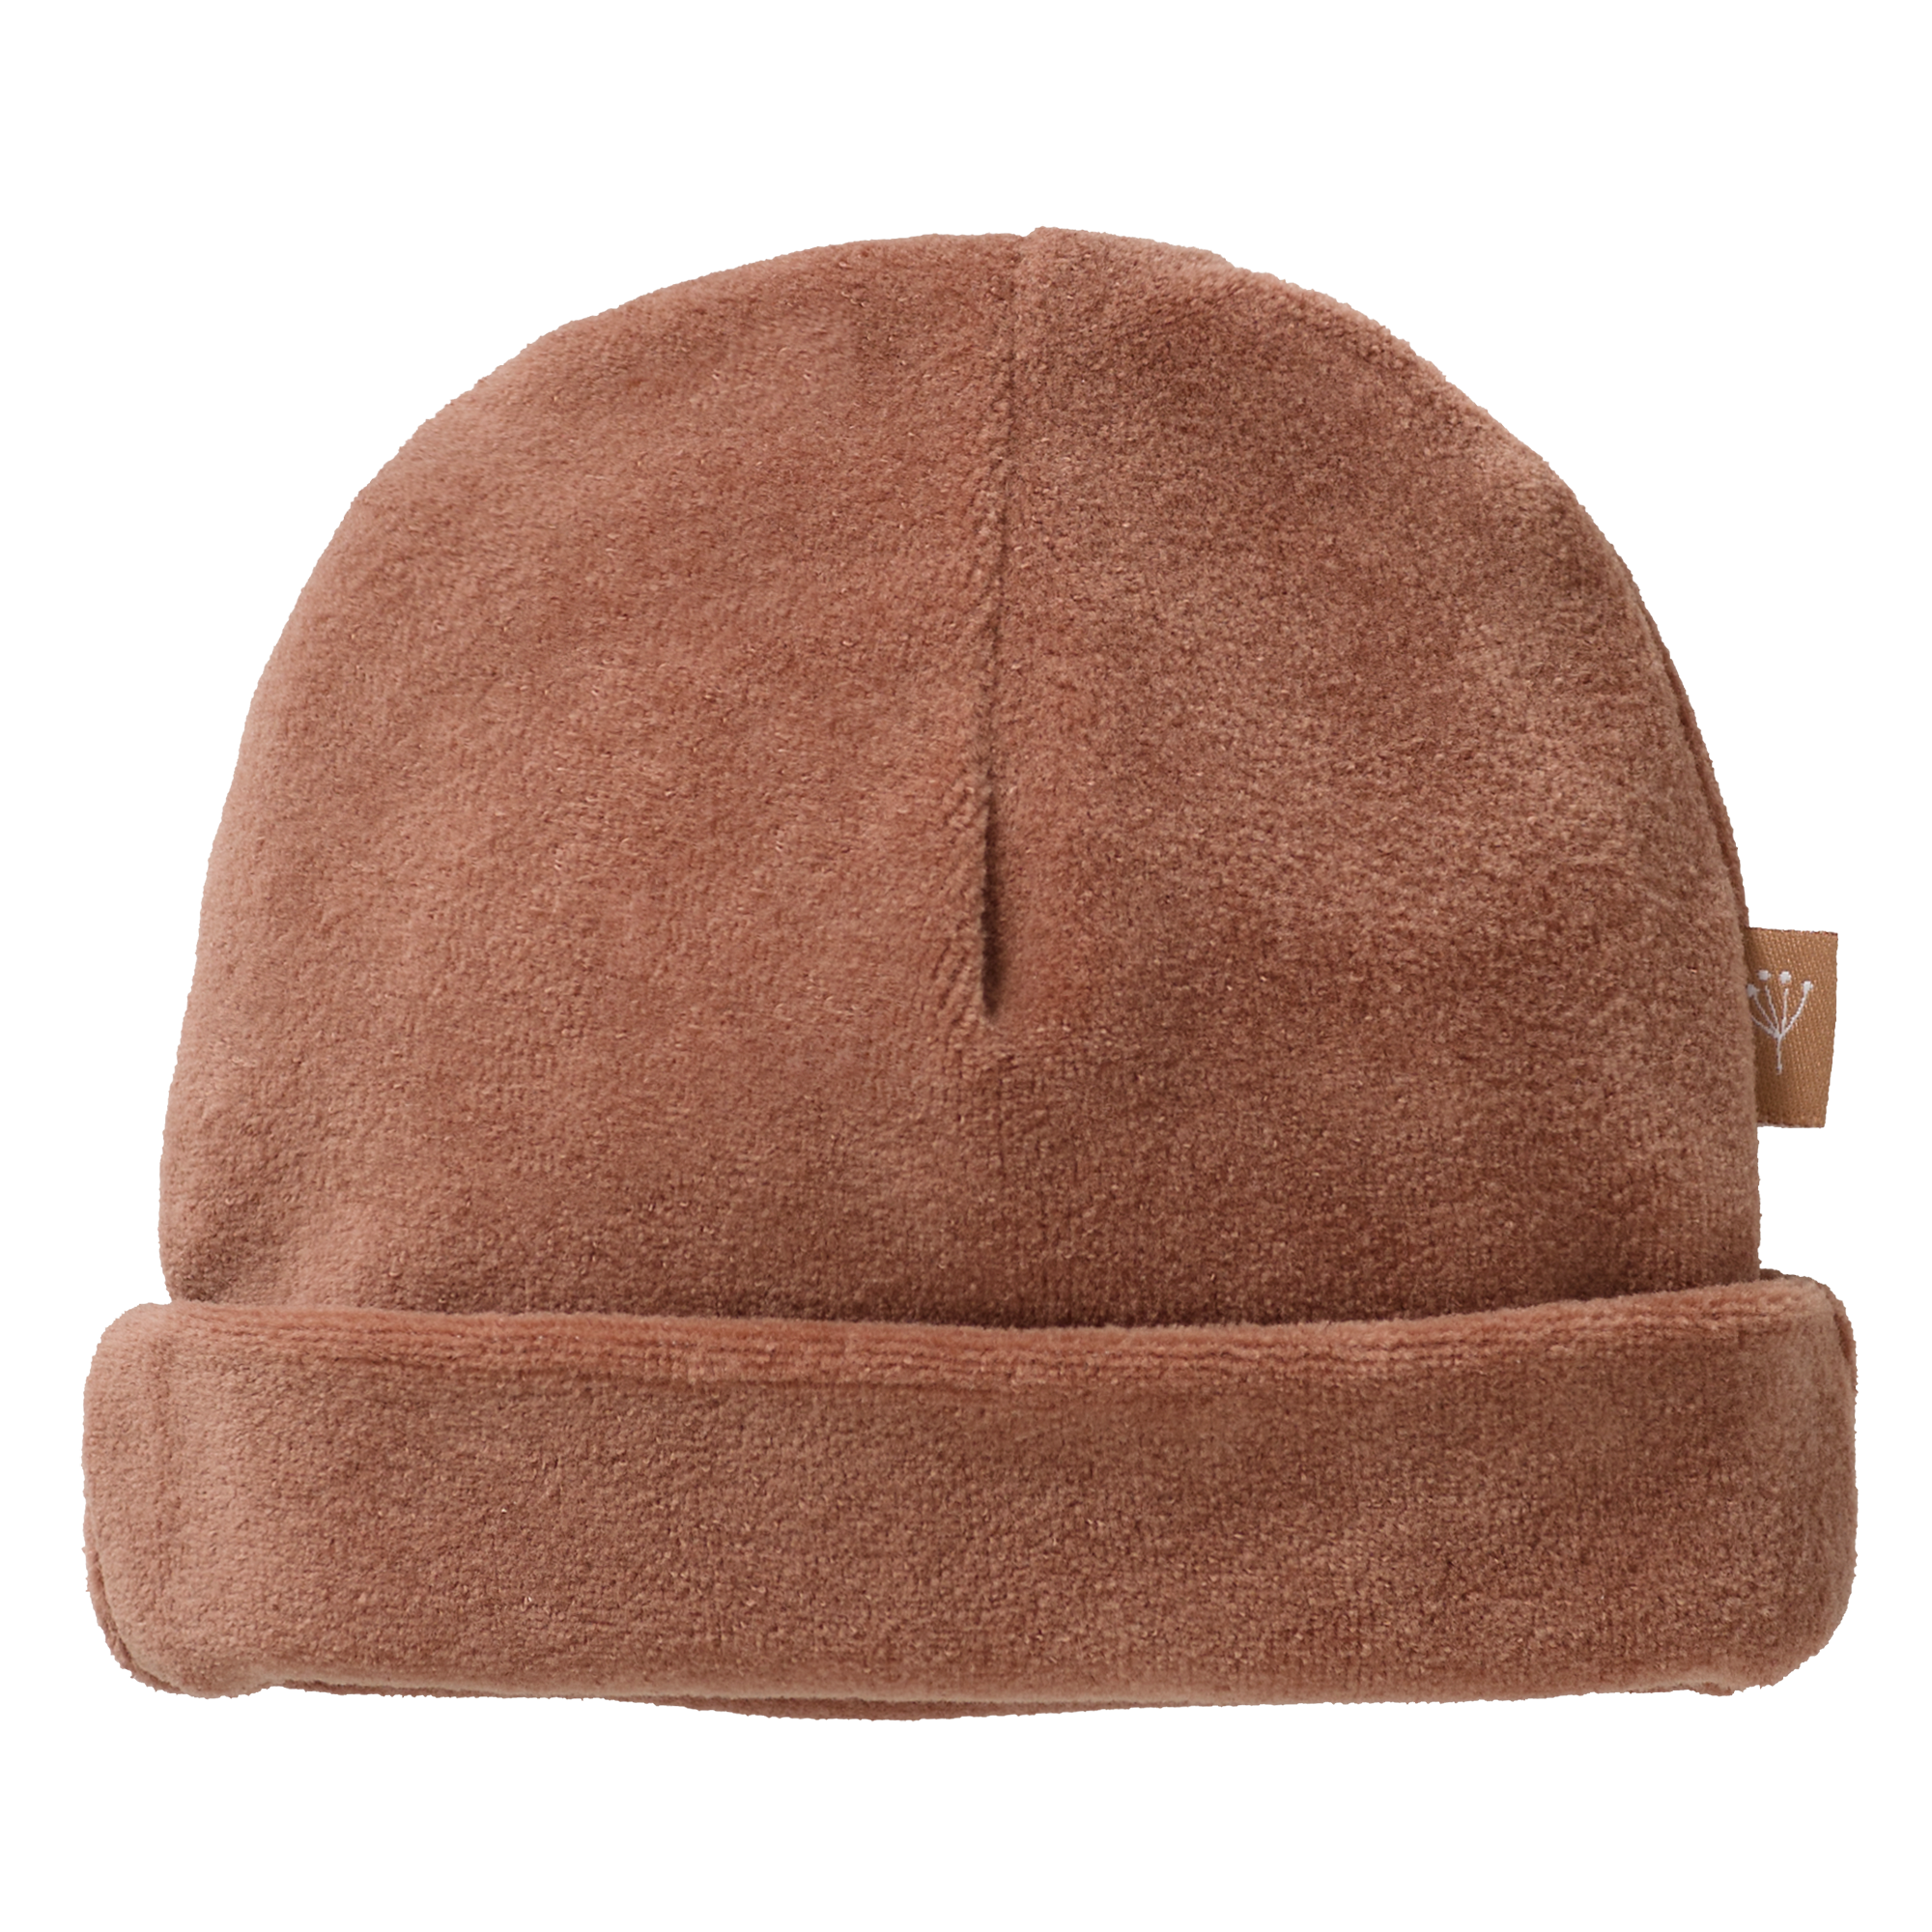 Hat velours tawny brown-1